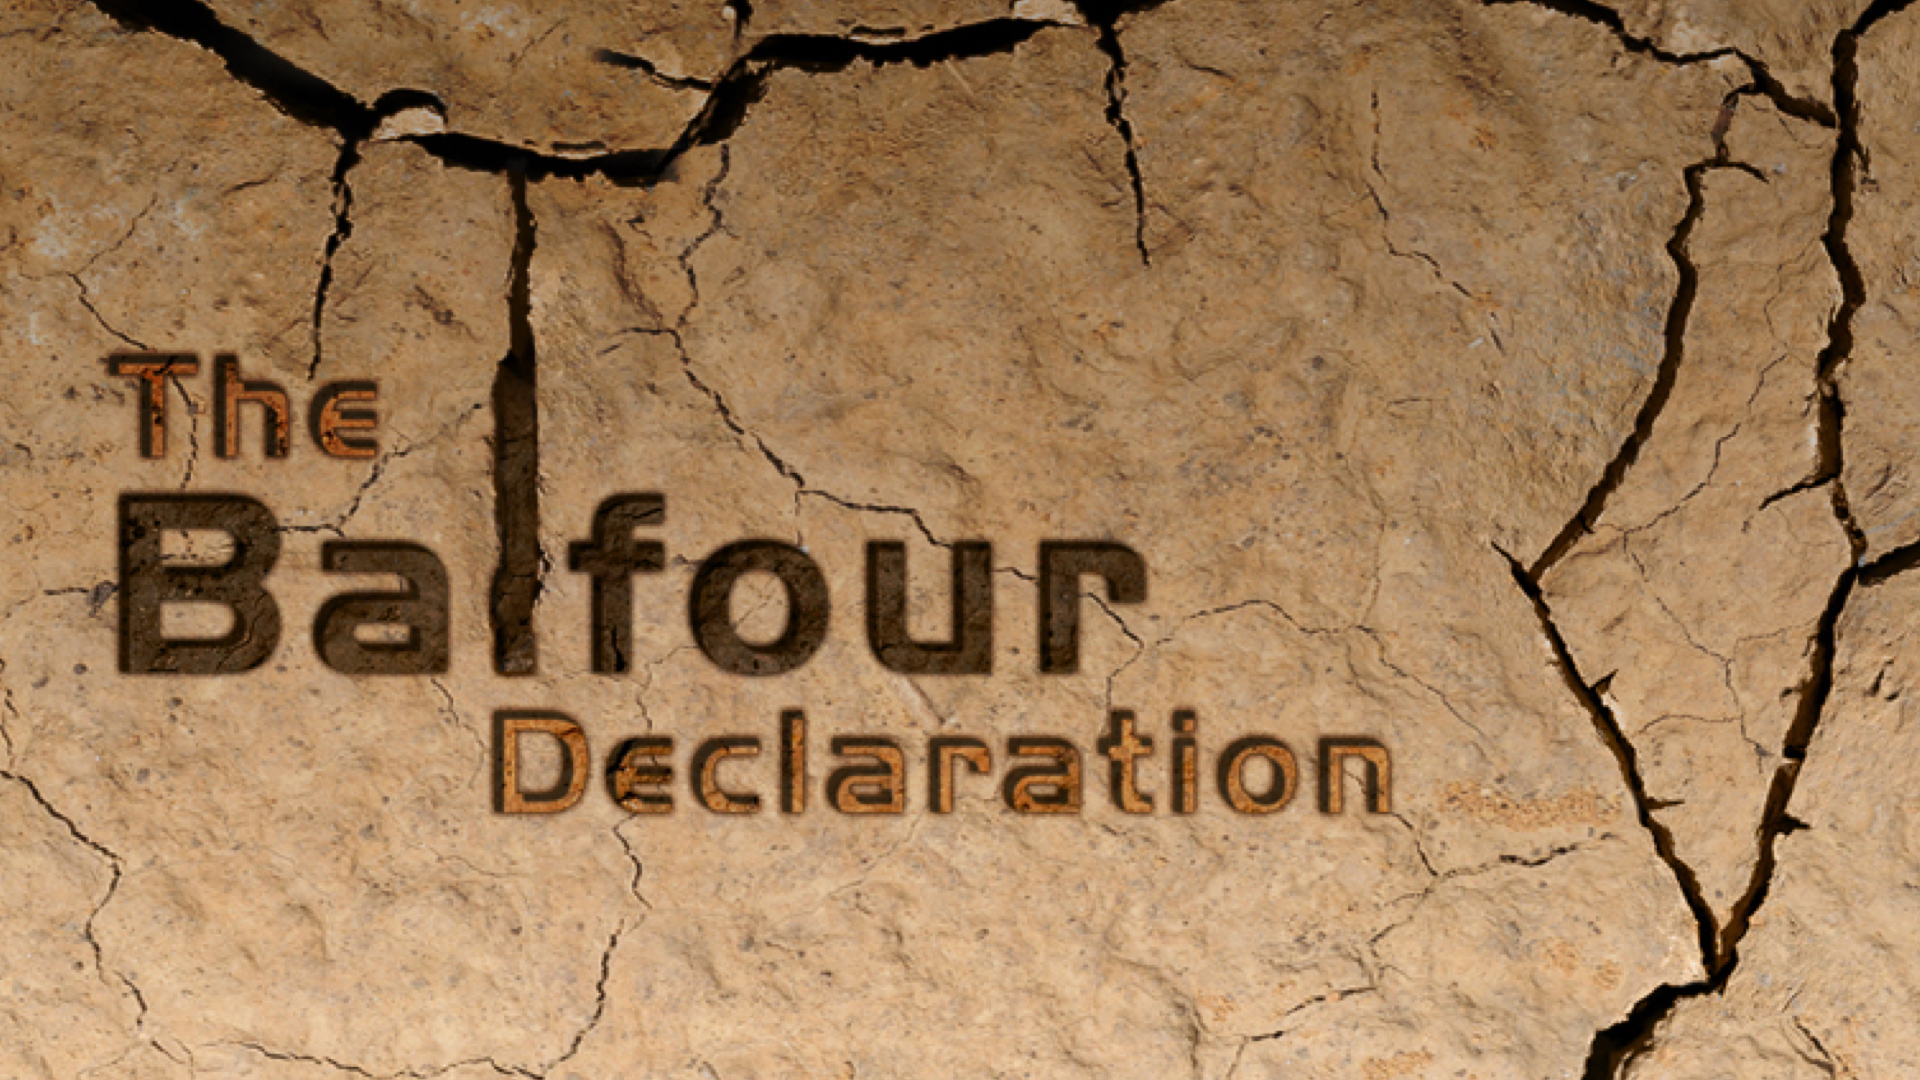 """The Balfour Declaration"" documentary film on Al Jazeera Arabic, produced by Noon Films"